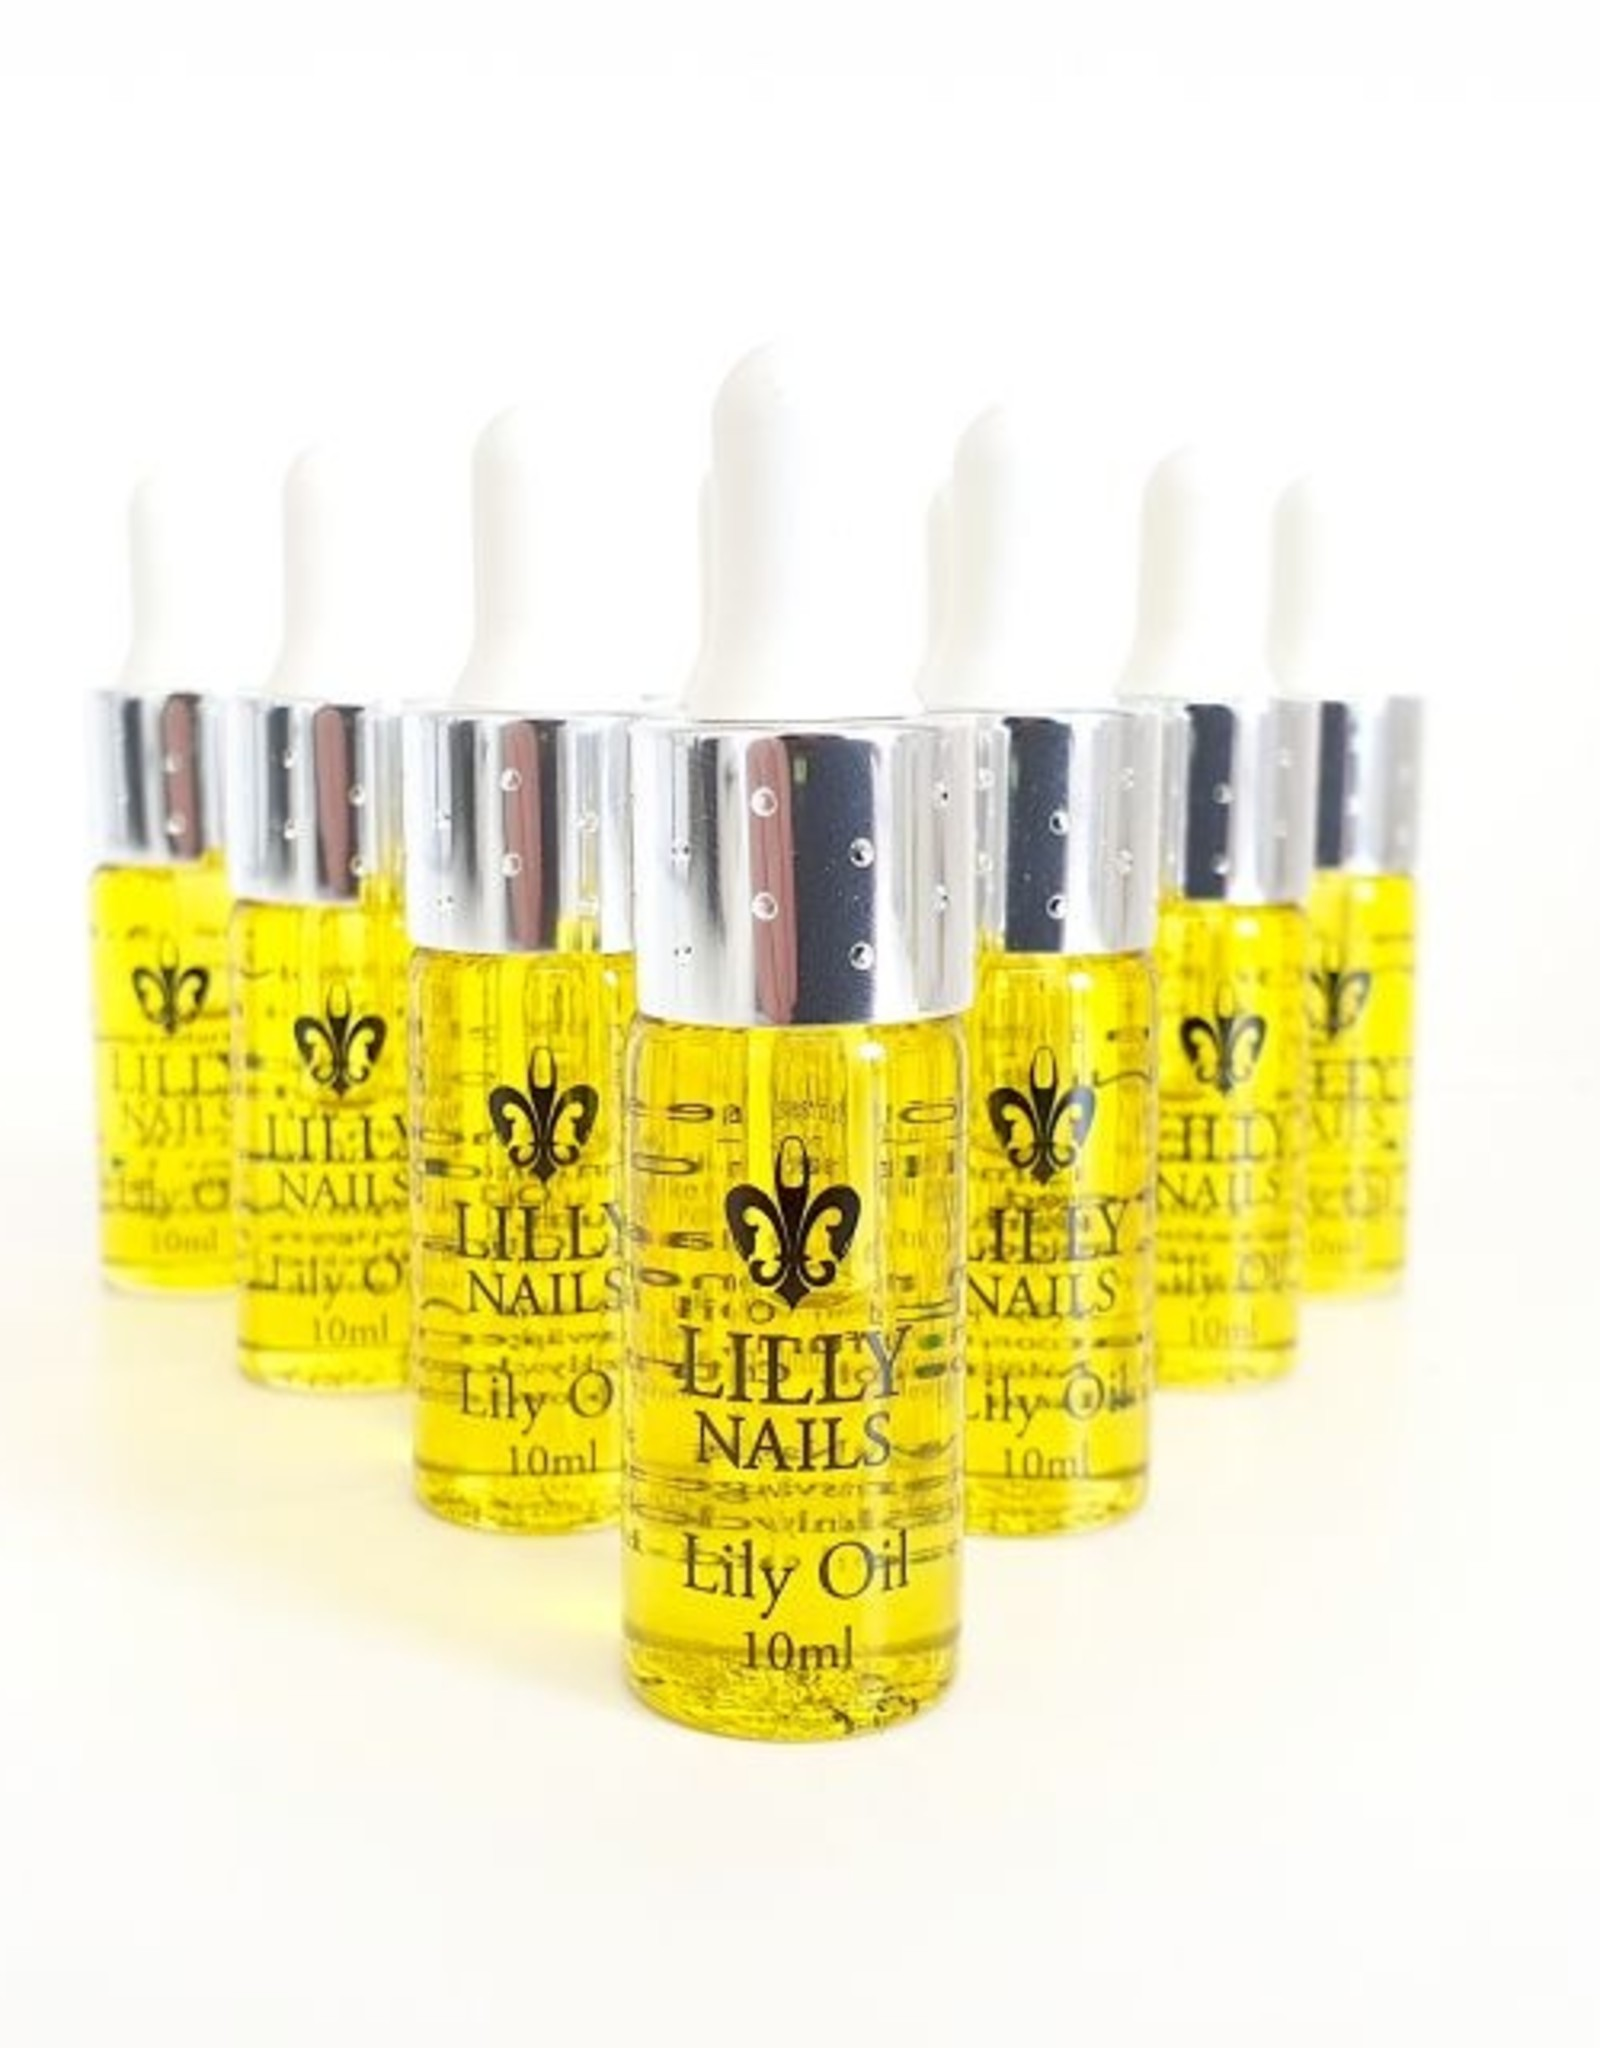 Nagelriem  olie Lily pipet 10ml 10 stuks